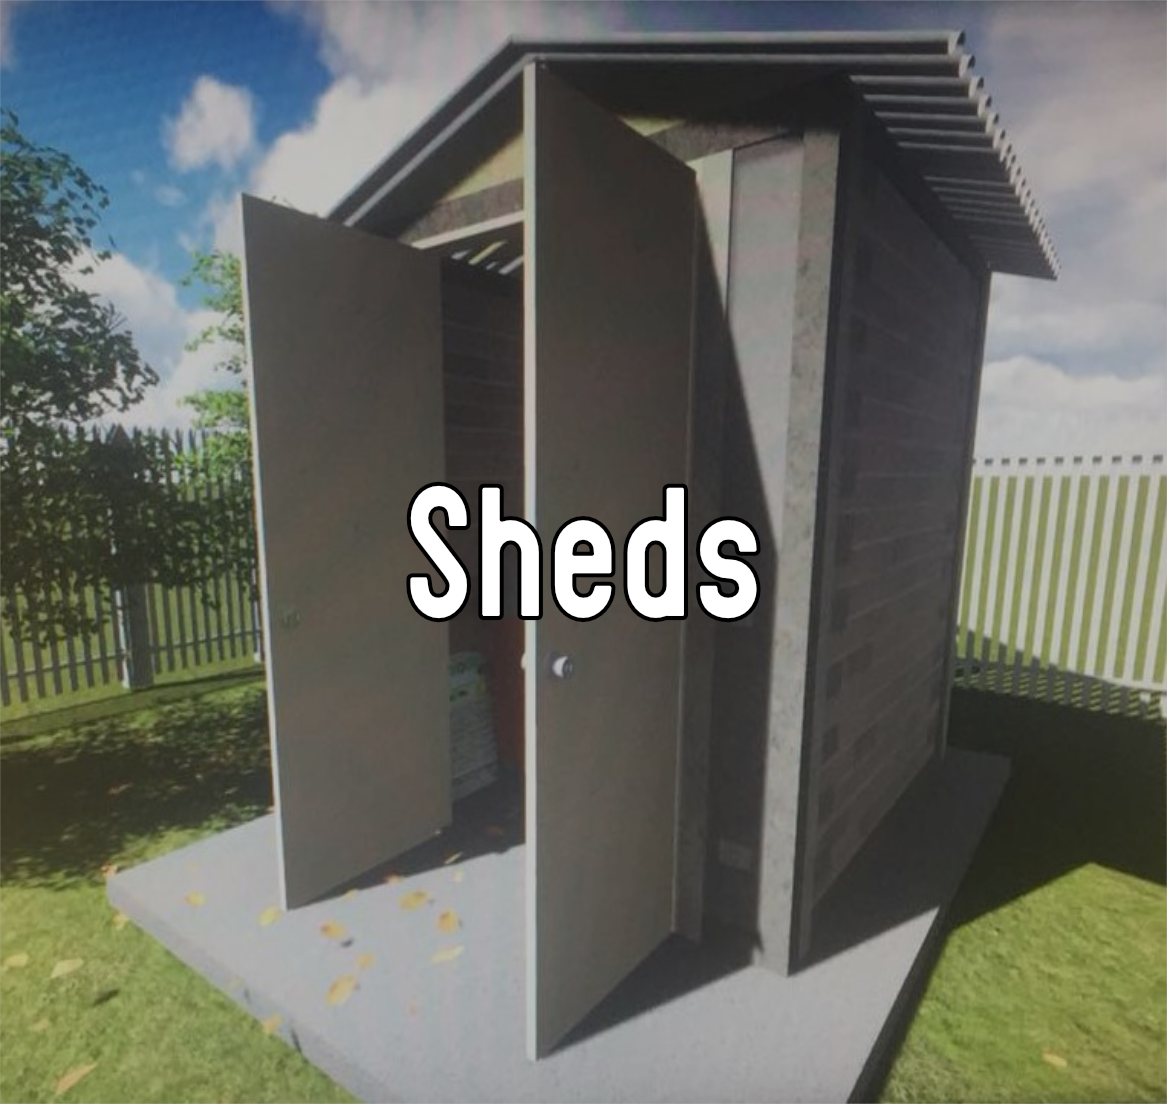 a shed made of reblocks